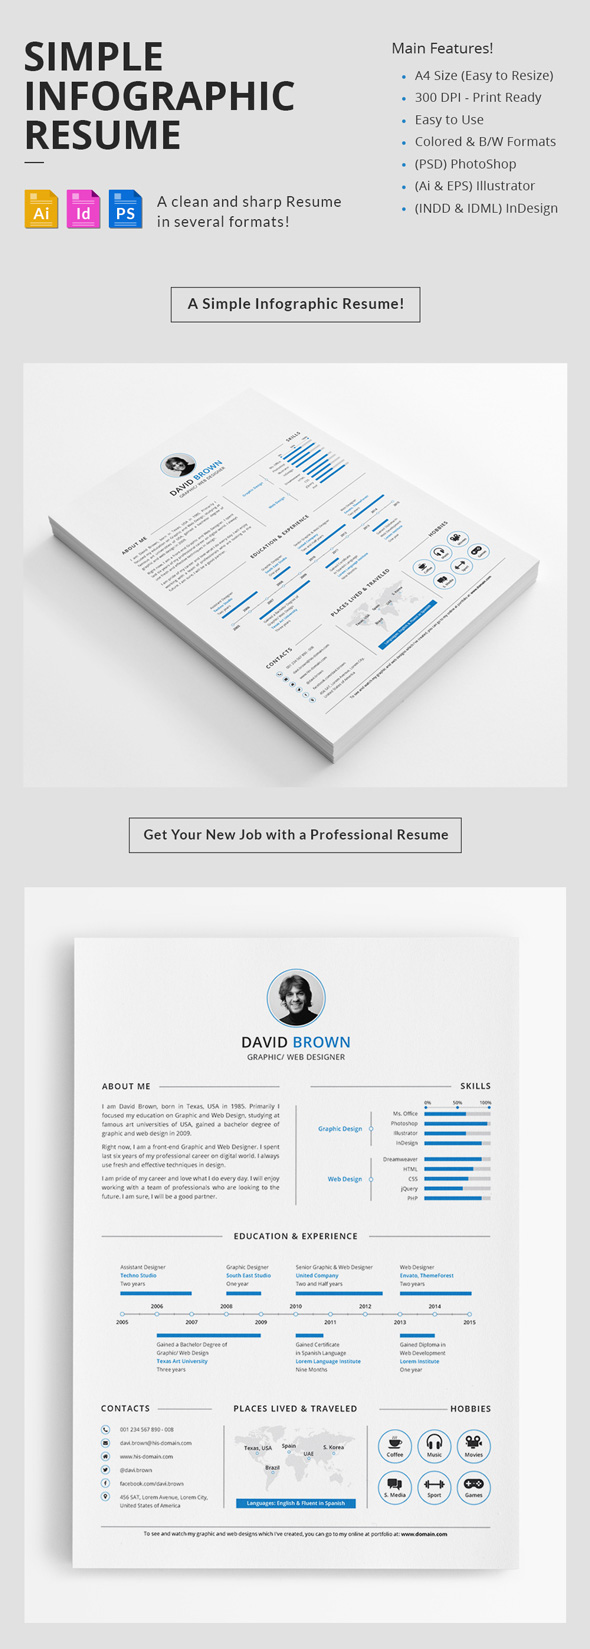 resume Graphic Resumes Templates 15 creative infographic resume templates minimal template design